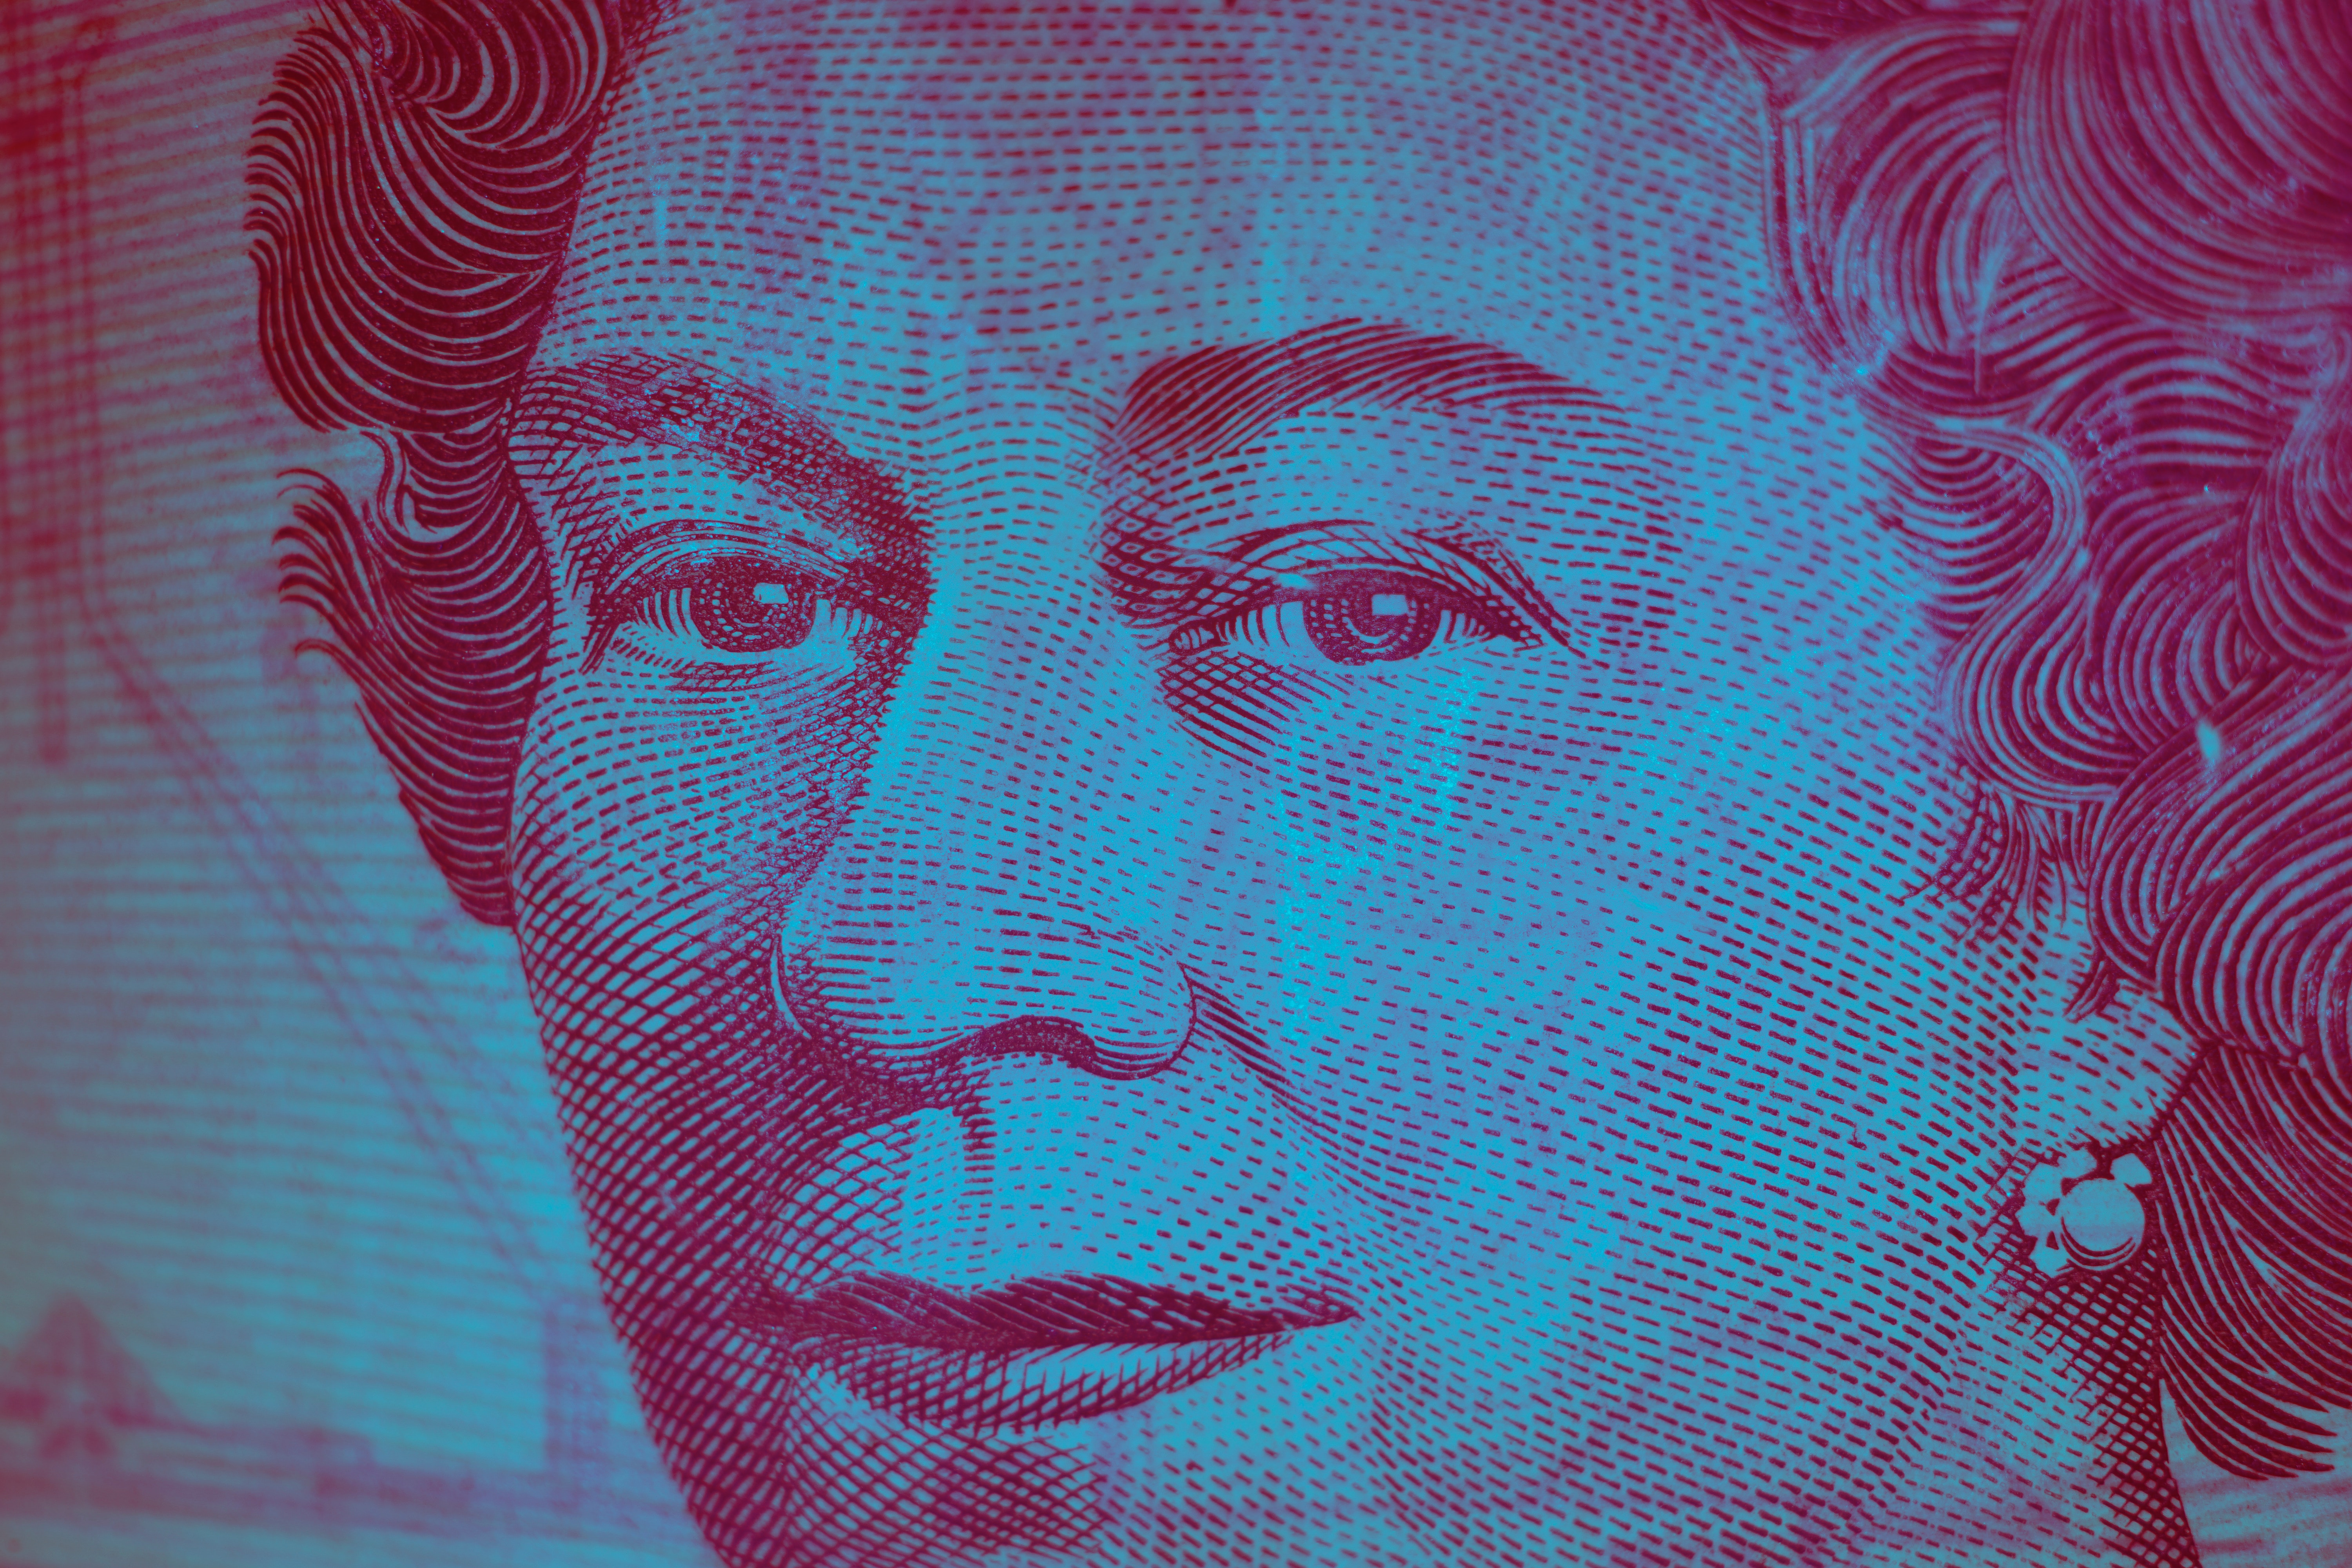 Close up of Queen of England's face on bank note